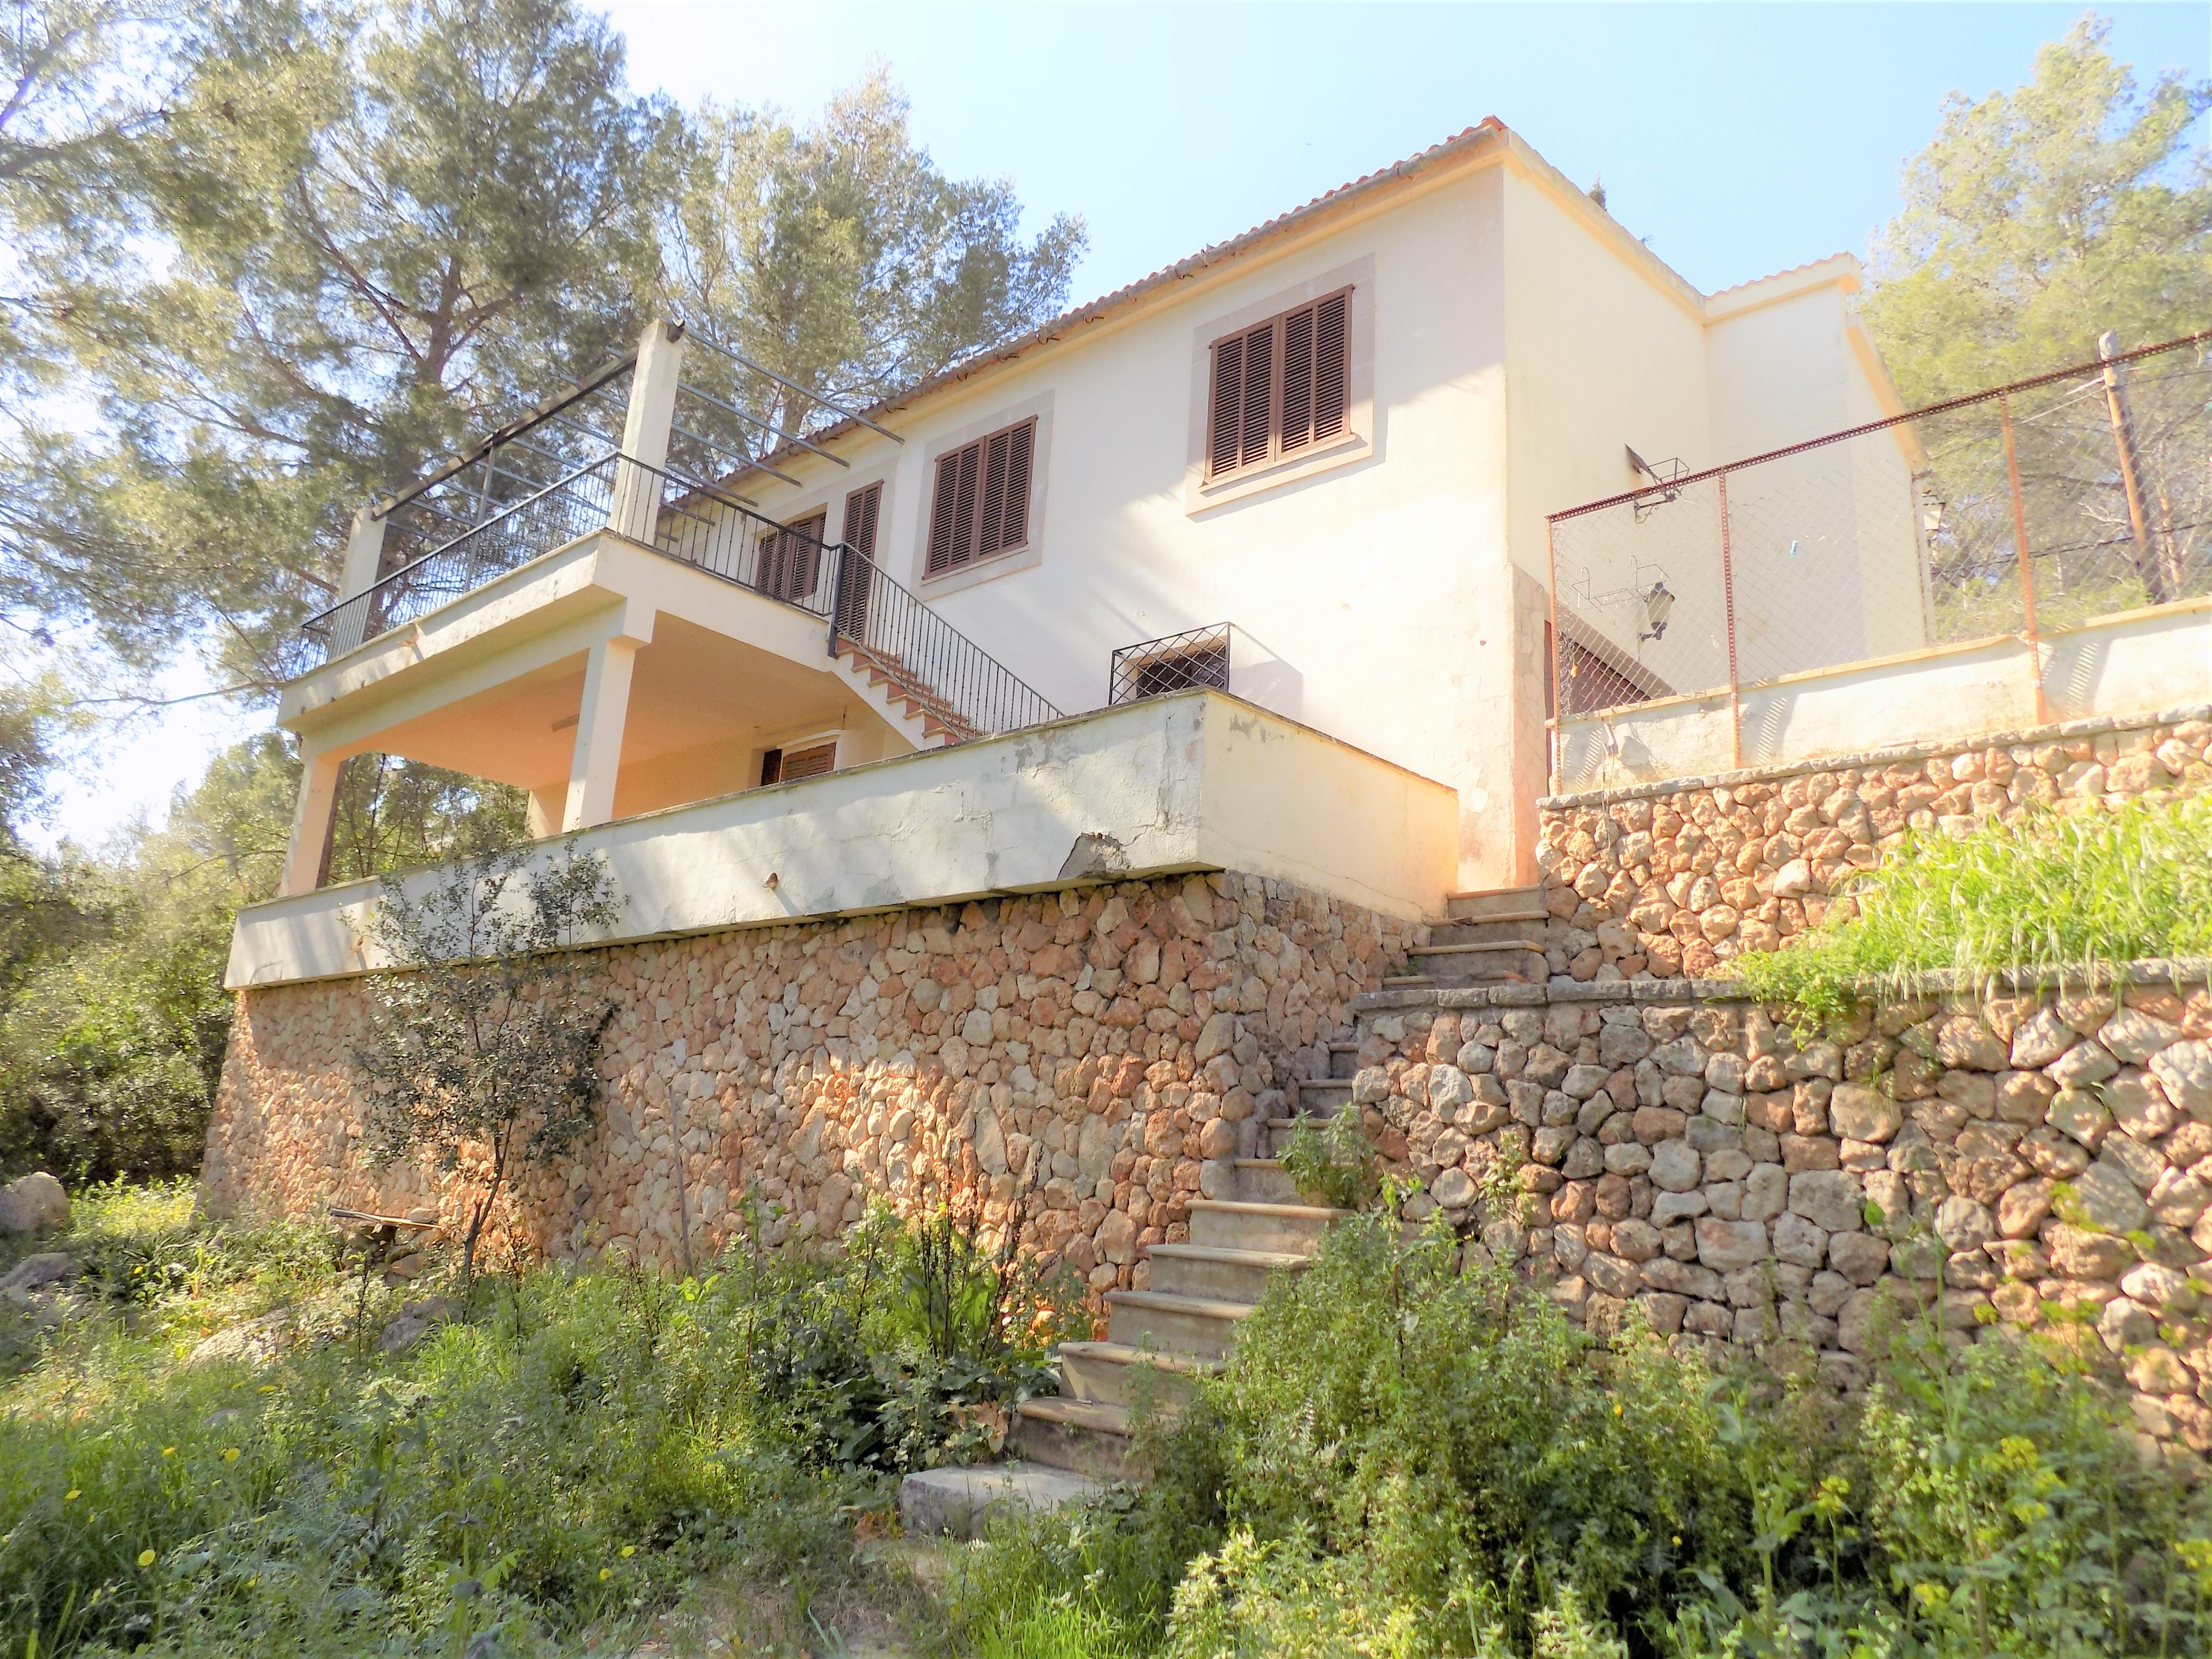 Property at Ses Rotgetes to reform